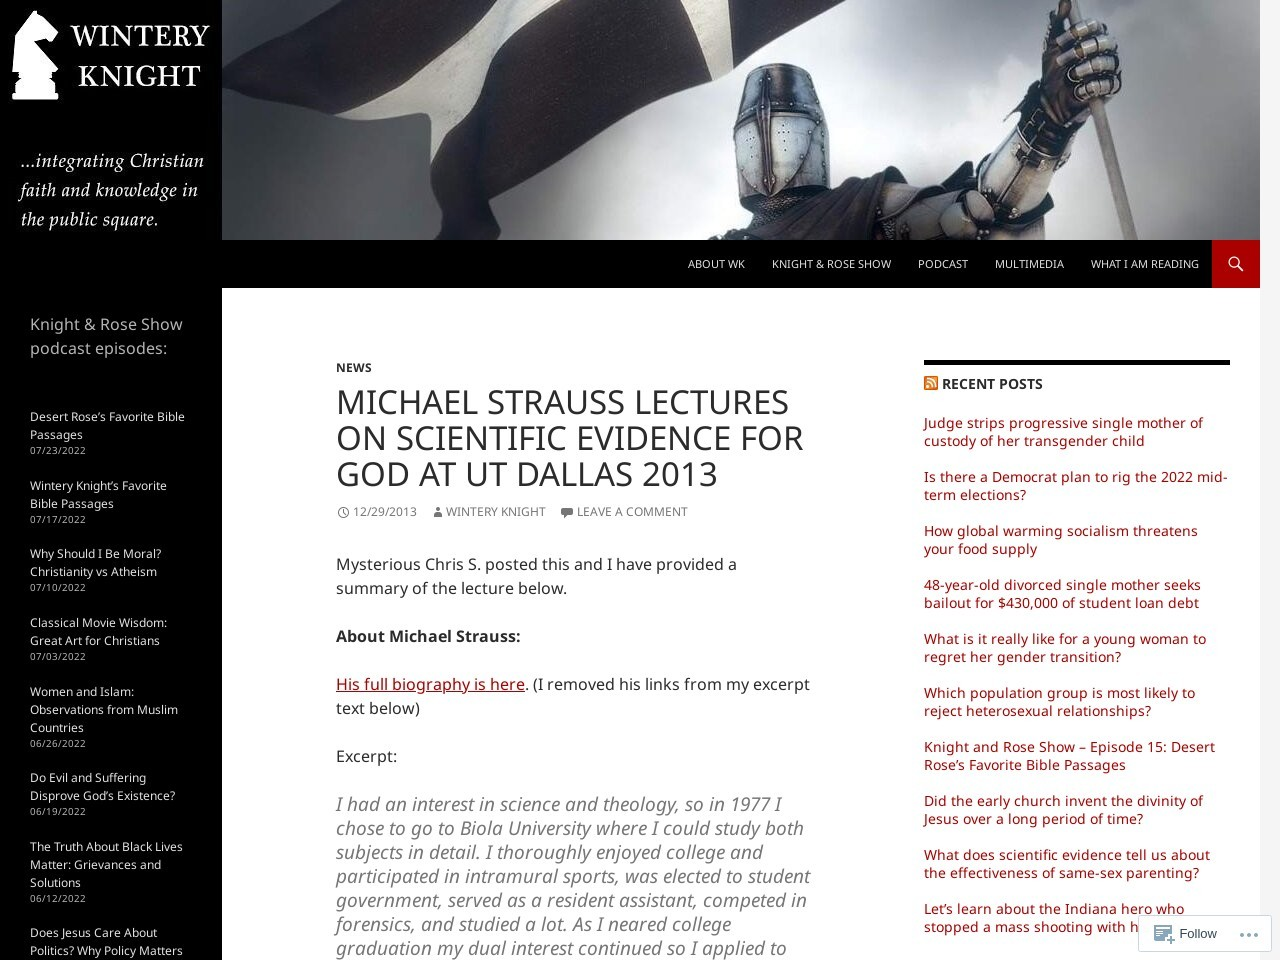 Michael Strauss lectures on scientific evidence for God at UT Dallas …